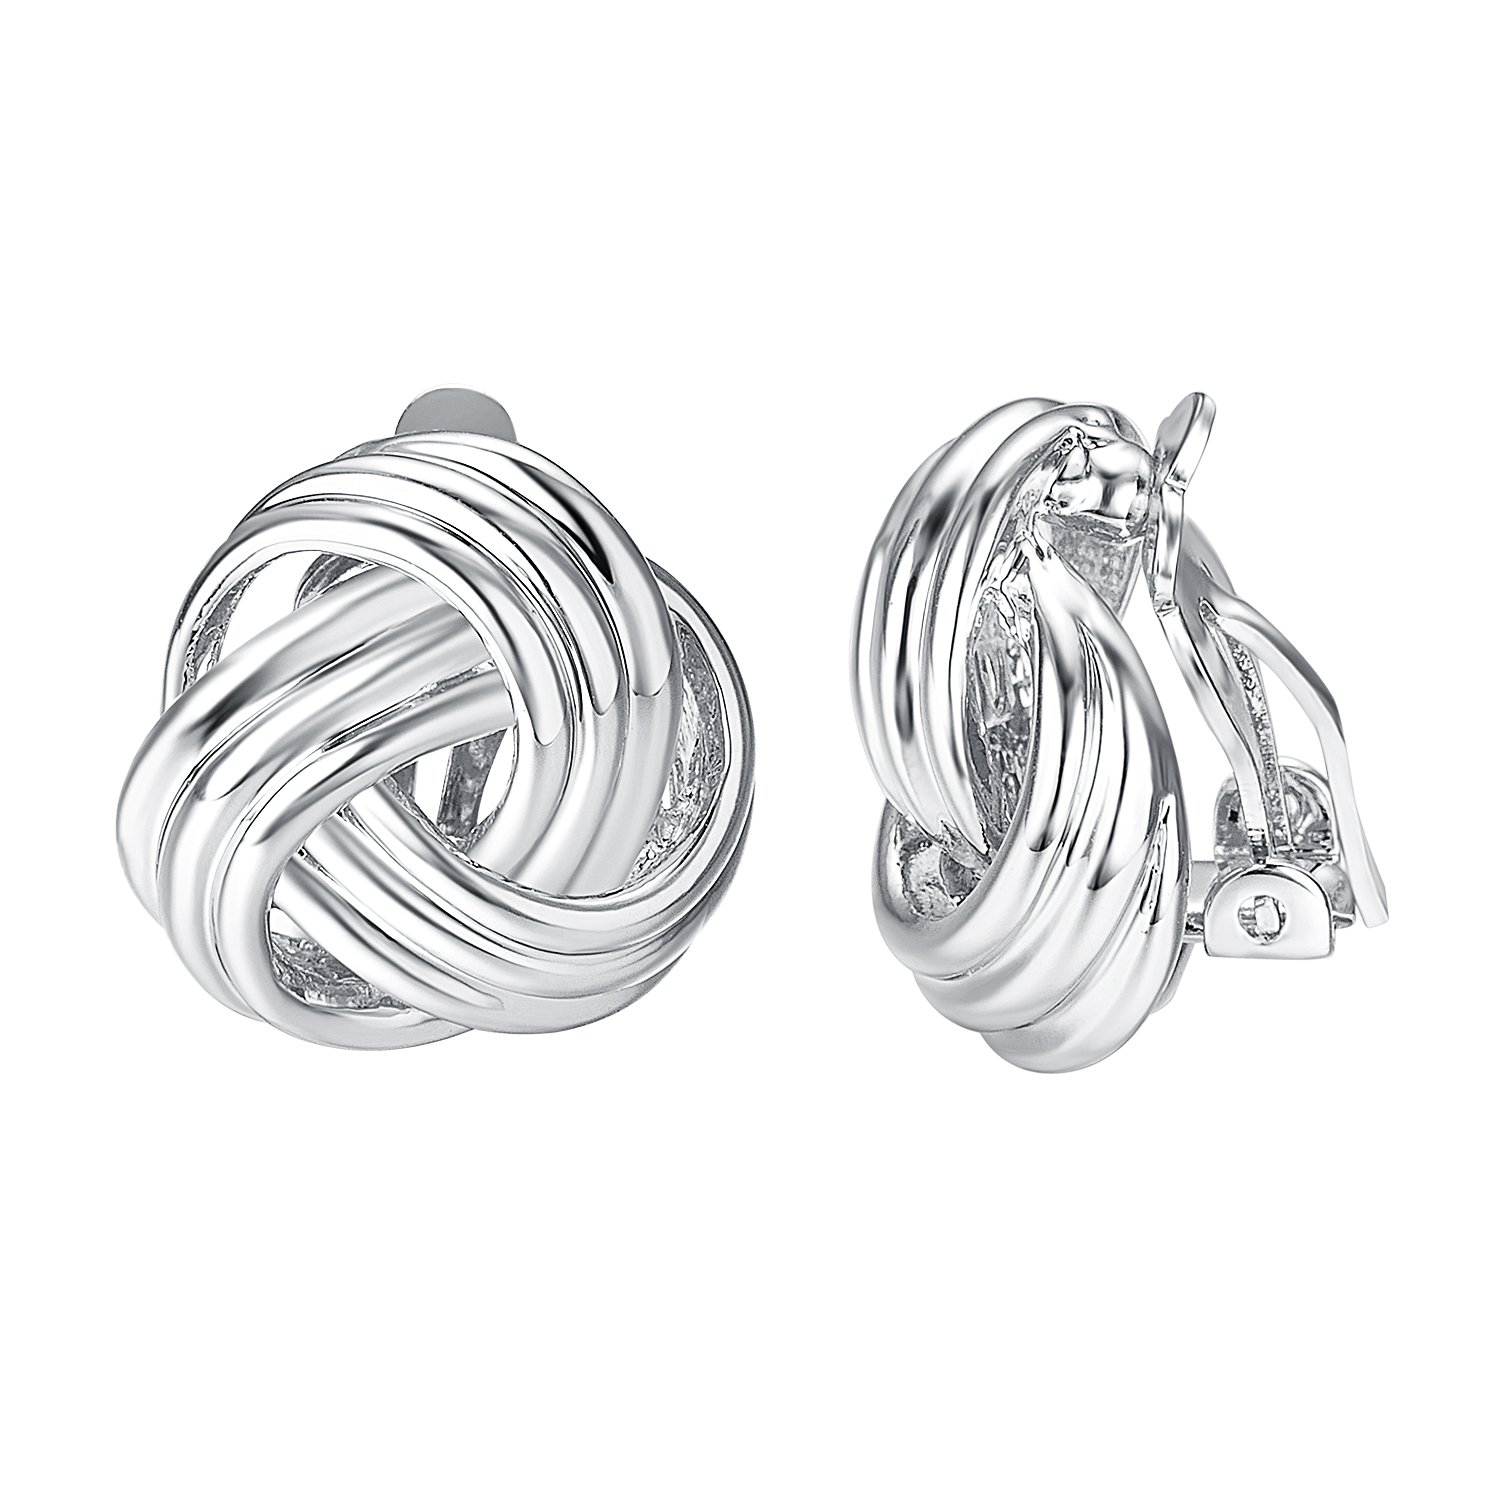 Yoursfs Statement Clip on Earrrings for Women18K White Gold Plated Love Knot Earrings